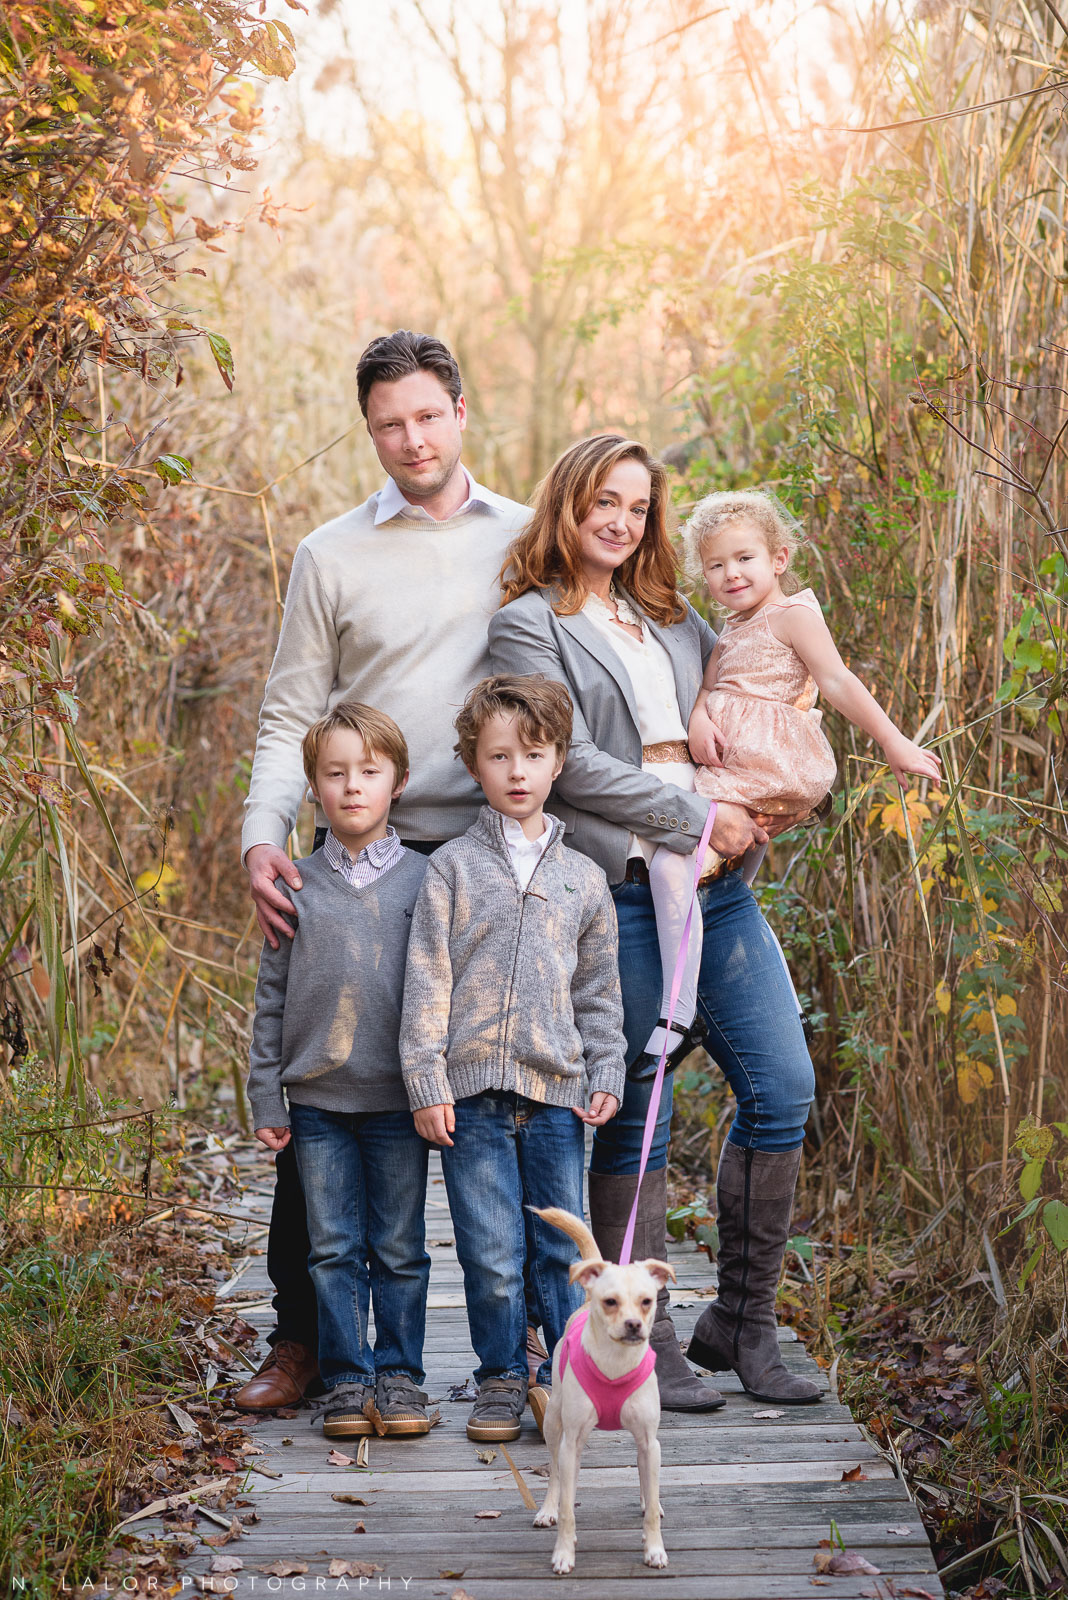 Family photo with twin boys, their little sister, and the family dog. Portrait by N. Lalor Photography. New Canaan Nature Center.